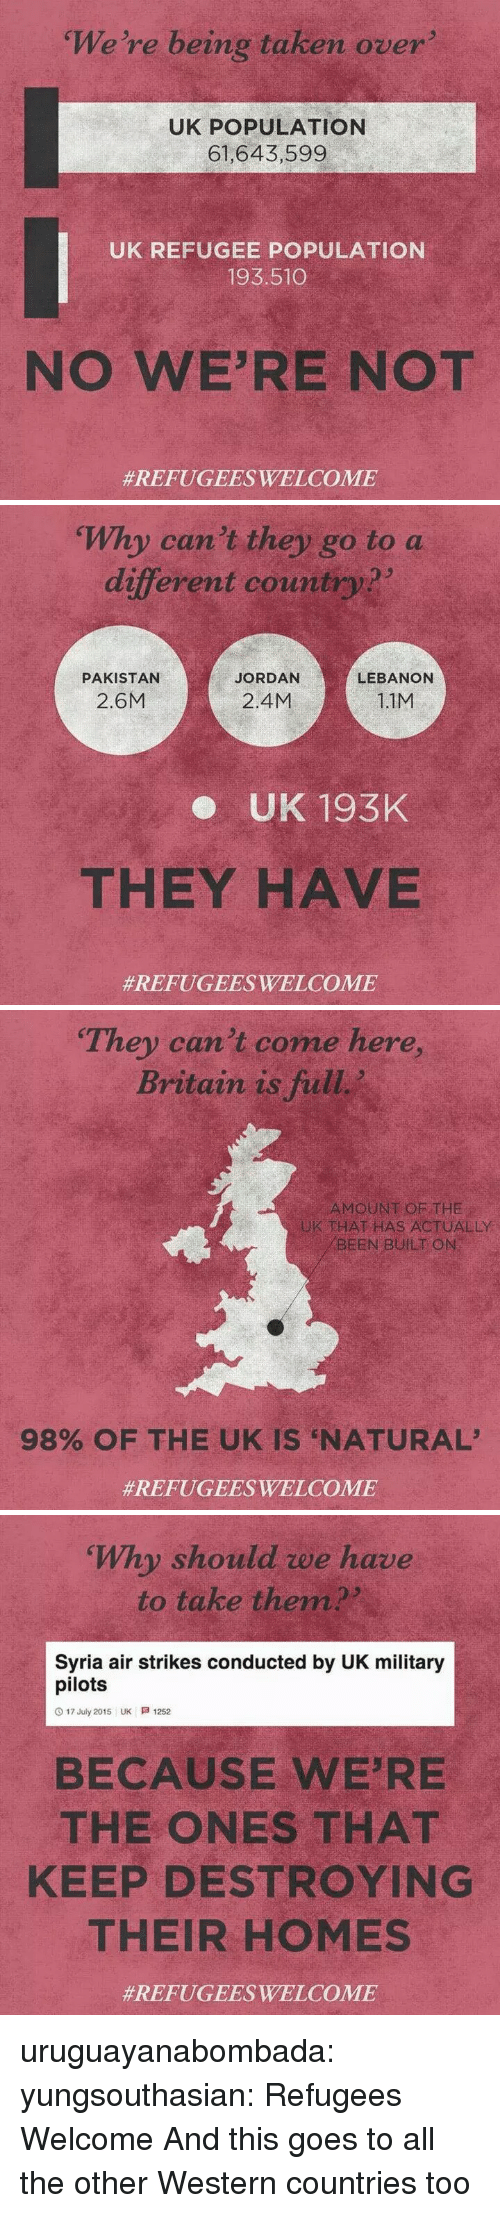 Taken, Target, and Tumblr: We're being taken over  UK POPULATION  61,643,599  UK REFUGEE POPULATION  193.510  NO WE'RE NOT  #REFUGEESWELCOME   Why can't they go to a  different country?  PAKISTAN  JORDAN  LEBANON  2.6M  2.4M  1.1M  e UK 193K  THEY HAVE  #REFUGEESWELCOME   They can't come here,  Britain is full  AMOUNT OF THE  THAT HAS ACTUALLY  BEENBUİLT ON  98% OF THE UK IS 'NATURAL'  #REFUGEESWELCOME   Why should we have  to take them  Syria air strikes conducted by UK military  pilots  O 17 July 2015 UK 1252  BECAUSE WE'RE  THE ONES THAT  KEEP DESTROYING  THEIR HOMES  uruguayanabombada: yungsouthasian: Refugees Welcome  And this goes to all the other Western countries too